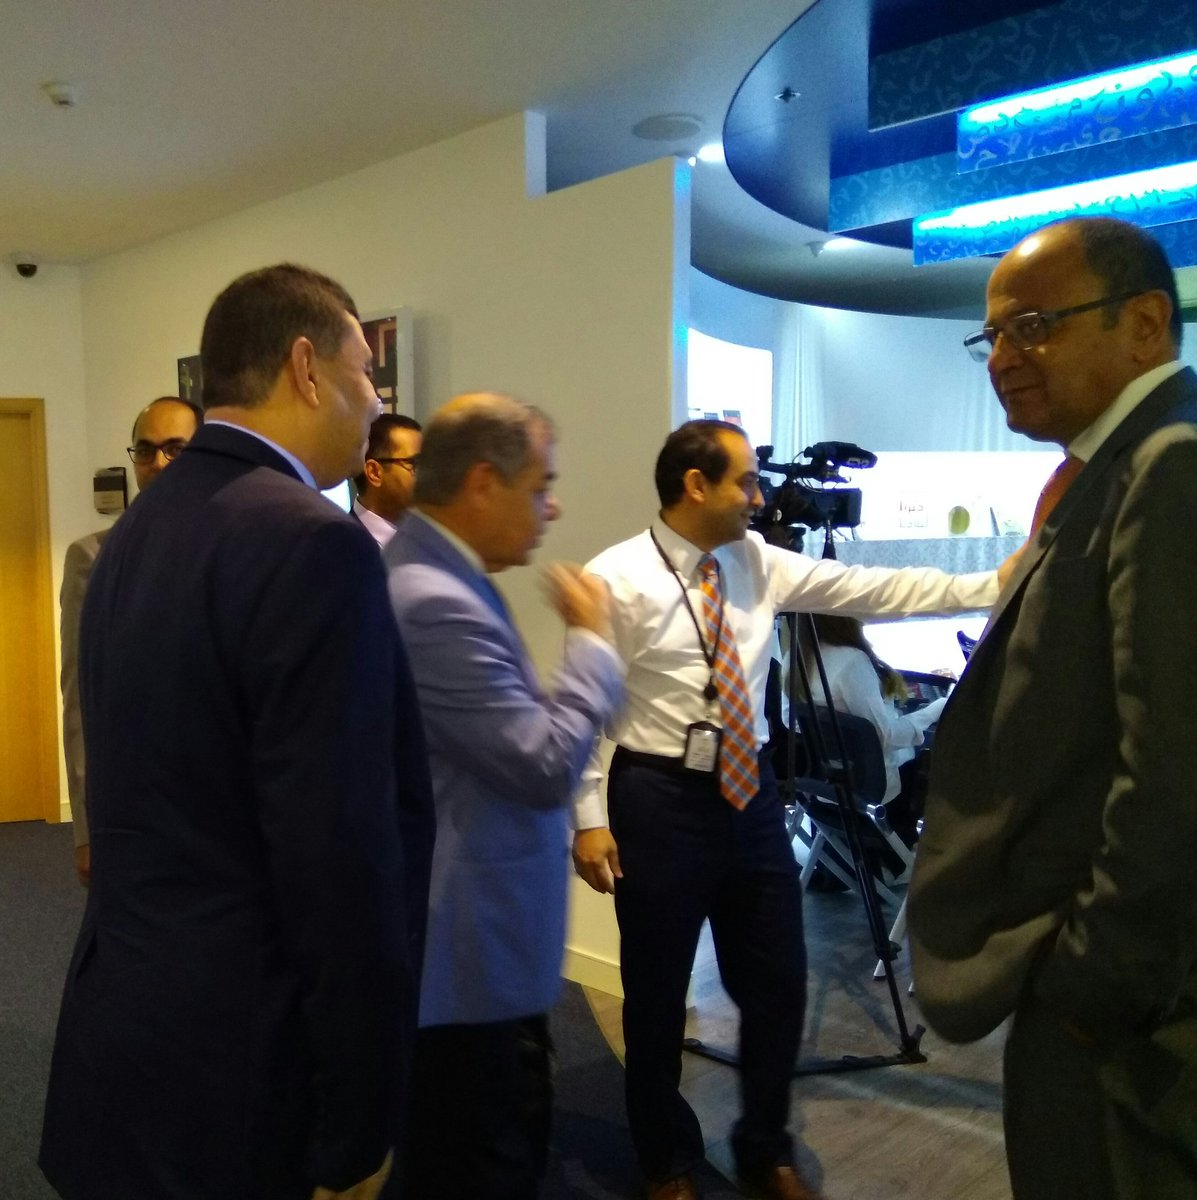 #Arab #knowledge project experts with @UNDPArabStates hub director @KhaledAbdelSha1 prior to the #press #conference  #KnowledgeIndex #UNDP <br>http://pic.twitter.com/3w93X4z9Rg